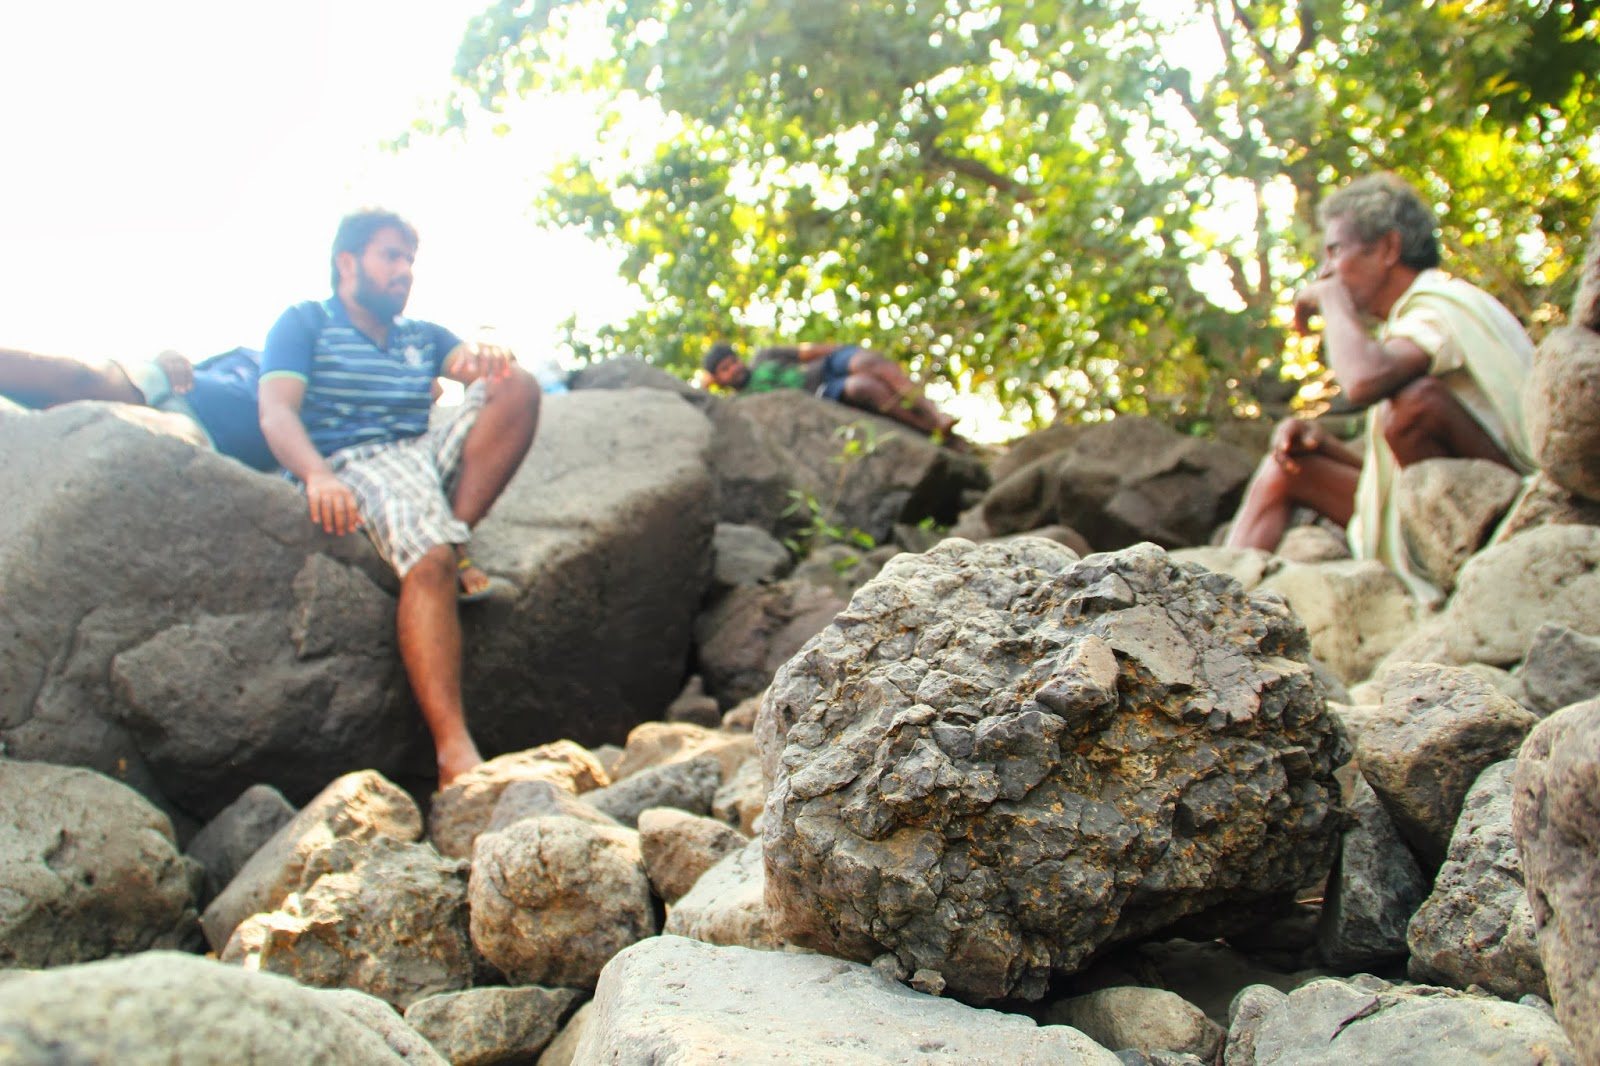 Relax on the Rocks...